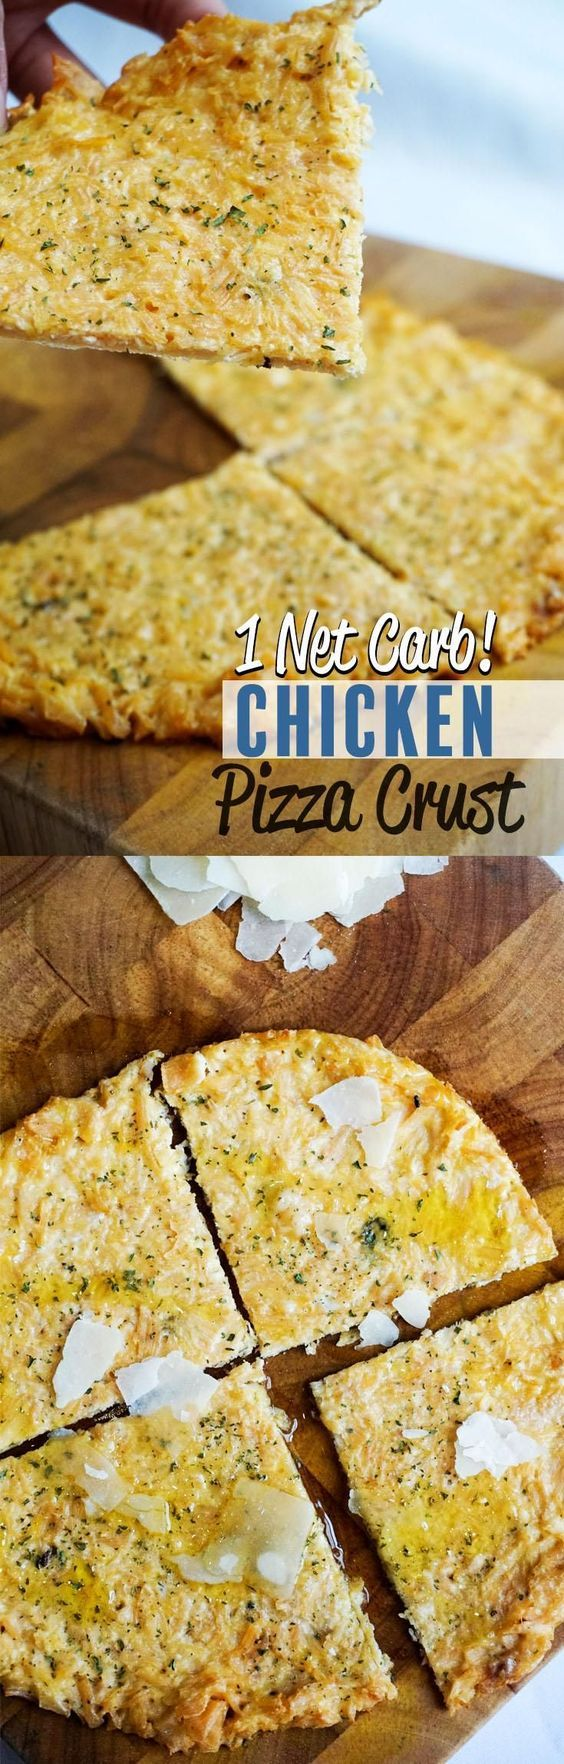 Low Carb Chicken Pizza! Actually, this pizza has only 1g of carbs and it's full of tasty ingredients. Thin, tasty, and suitable for keto and LCHF!